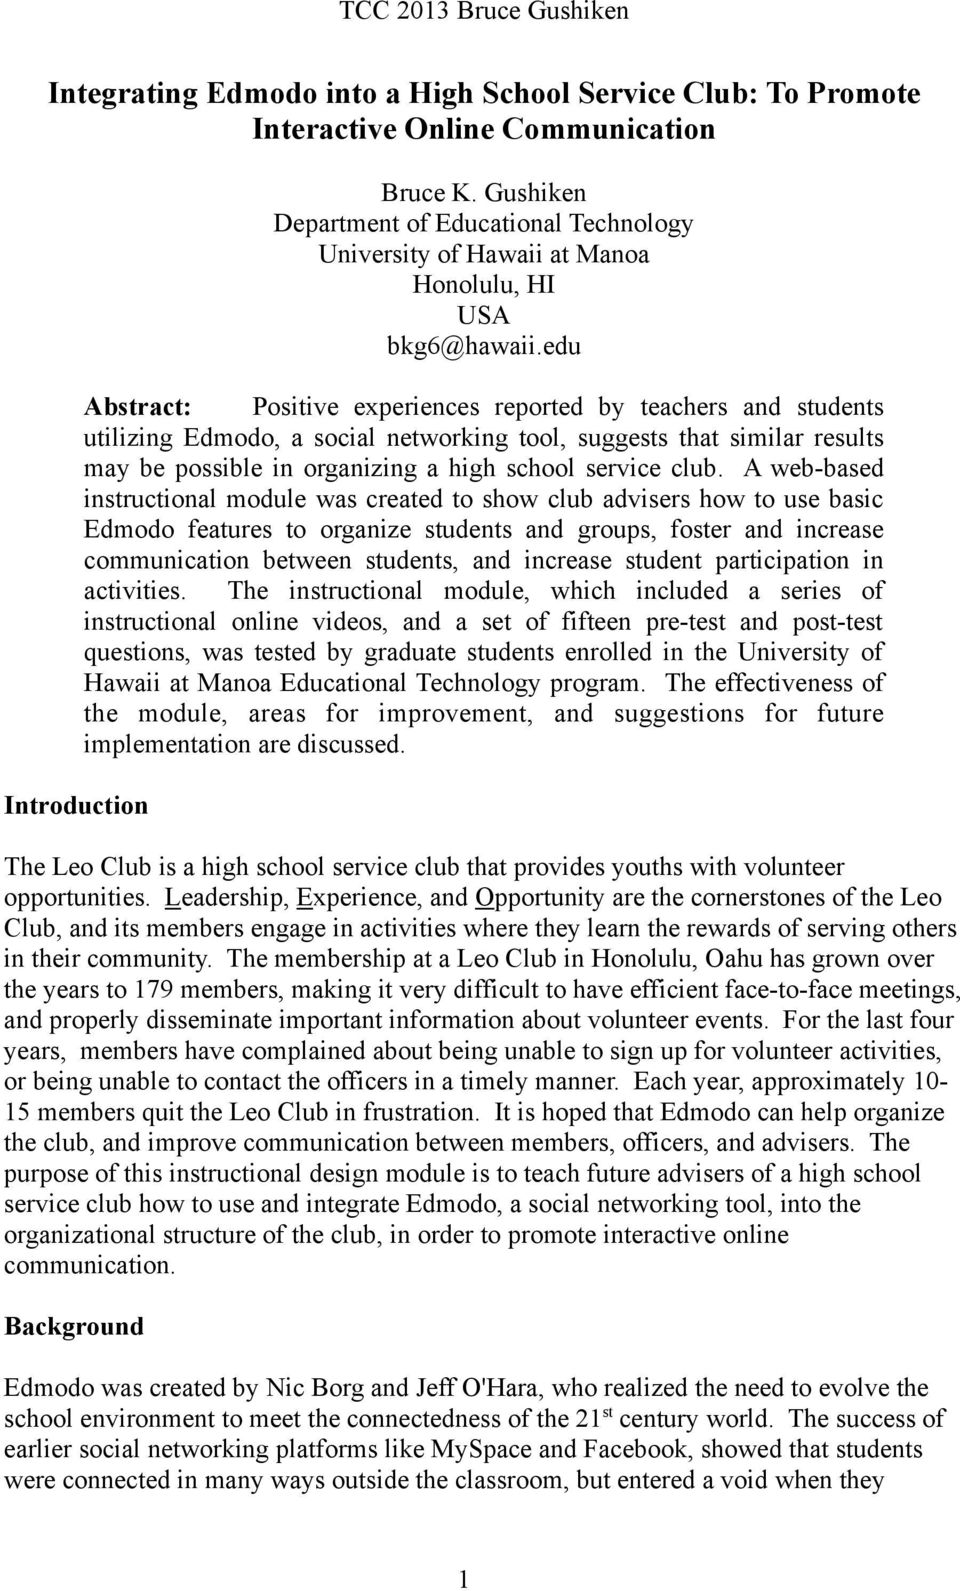 edu Abstract: Positive experiences reported by teachers and students utilizing Edmodo, a social networking tool, suggests that similar results may be possible in organizing a high school service club.